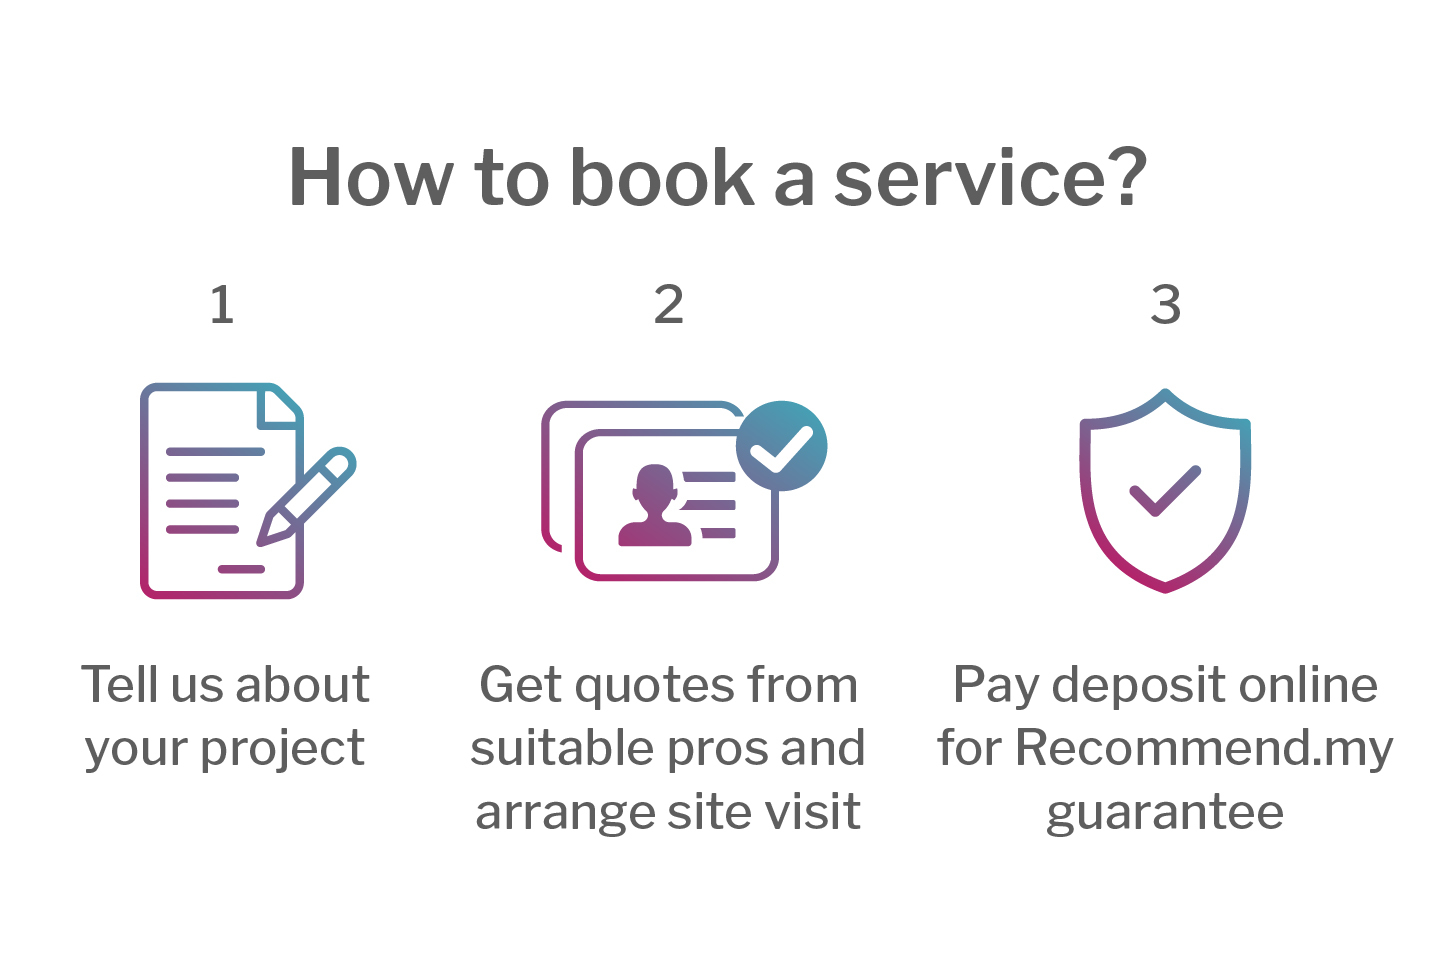 How to book a service1 01  1